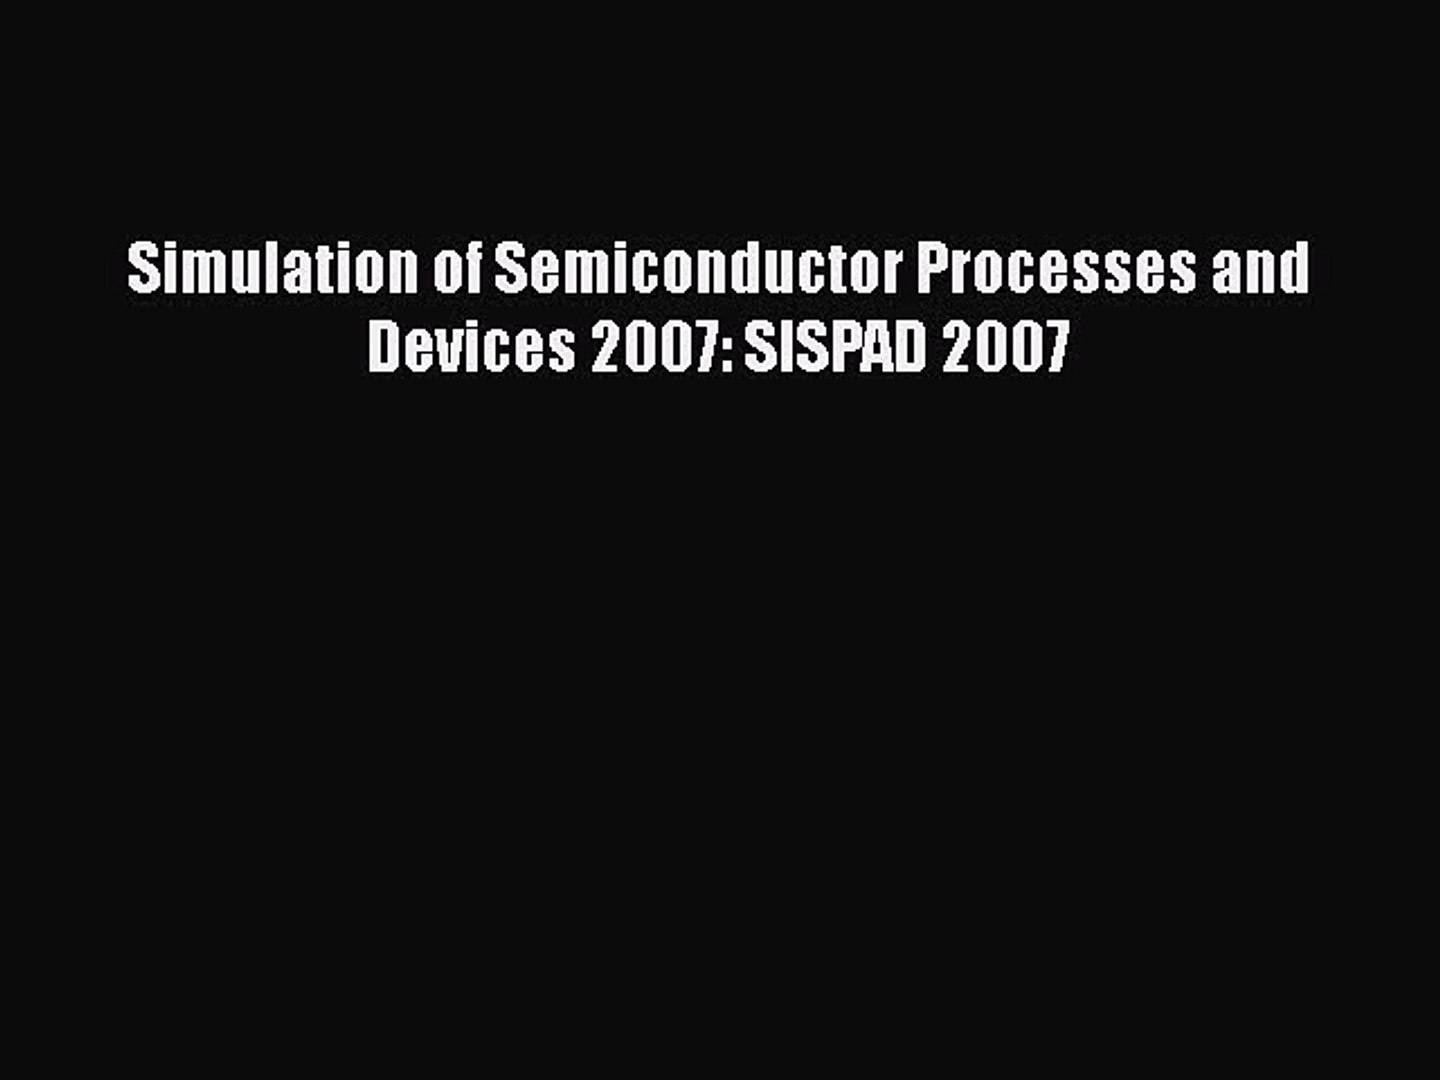 [PDF] Simulation of Semiconductor Processes and Devices 2007: SISPAD 2007  Full EBook